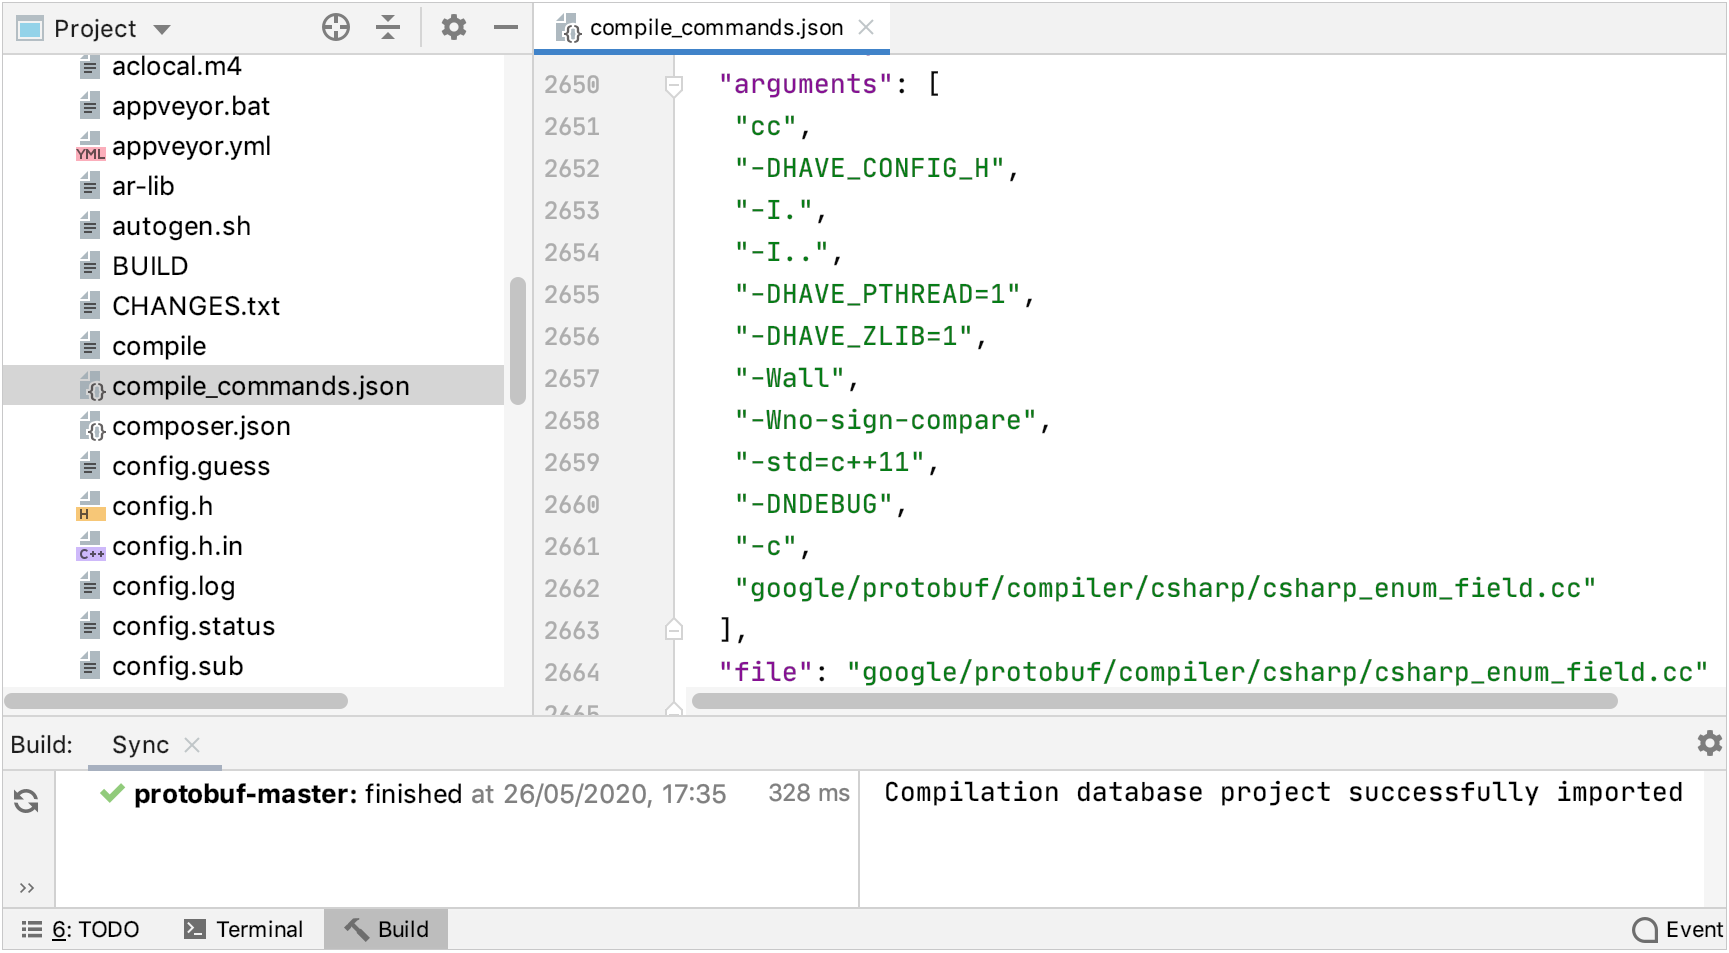 Compilation database project